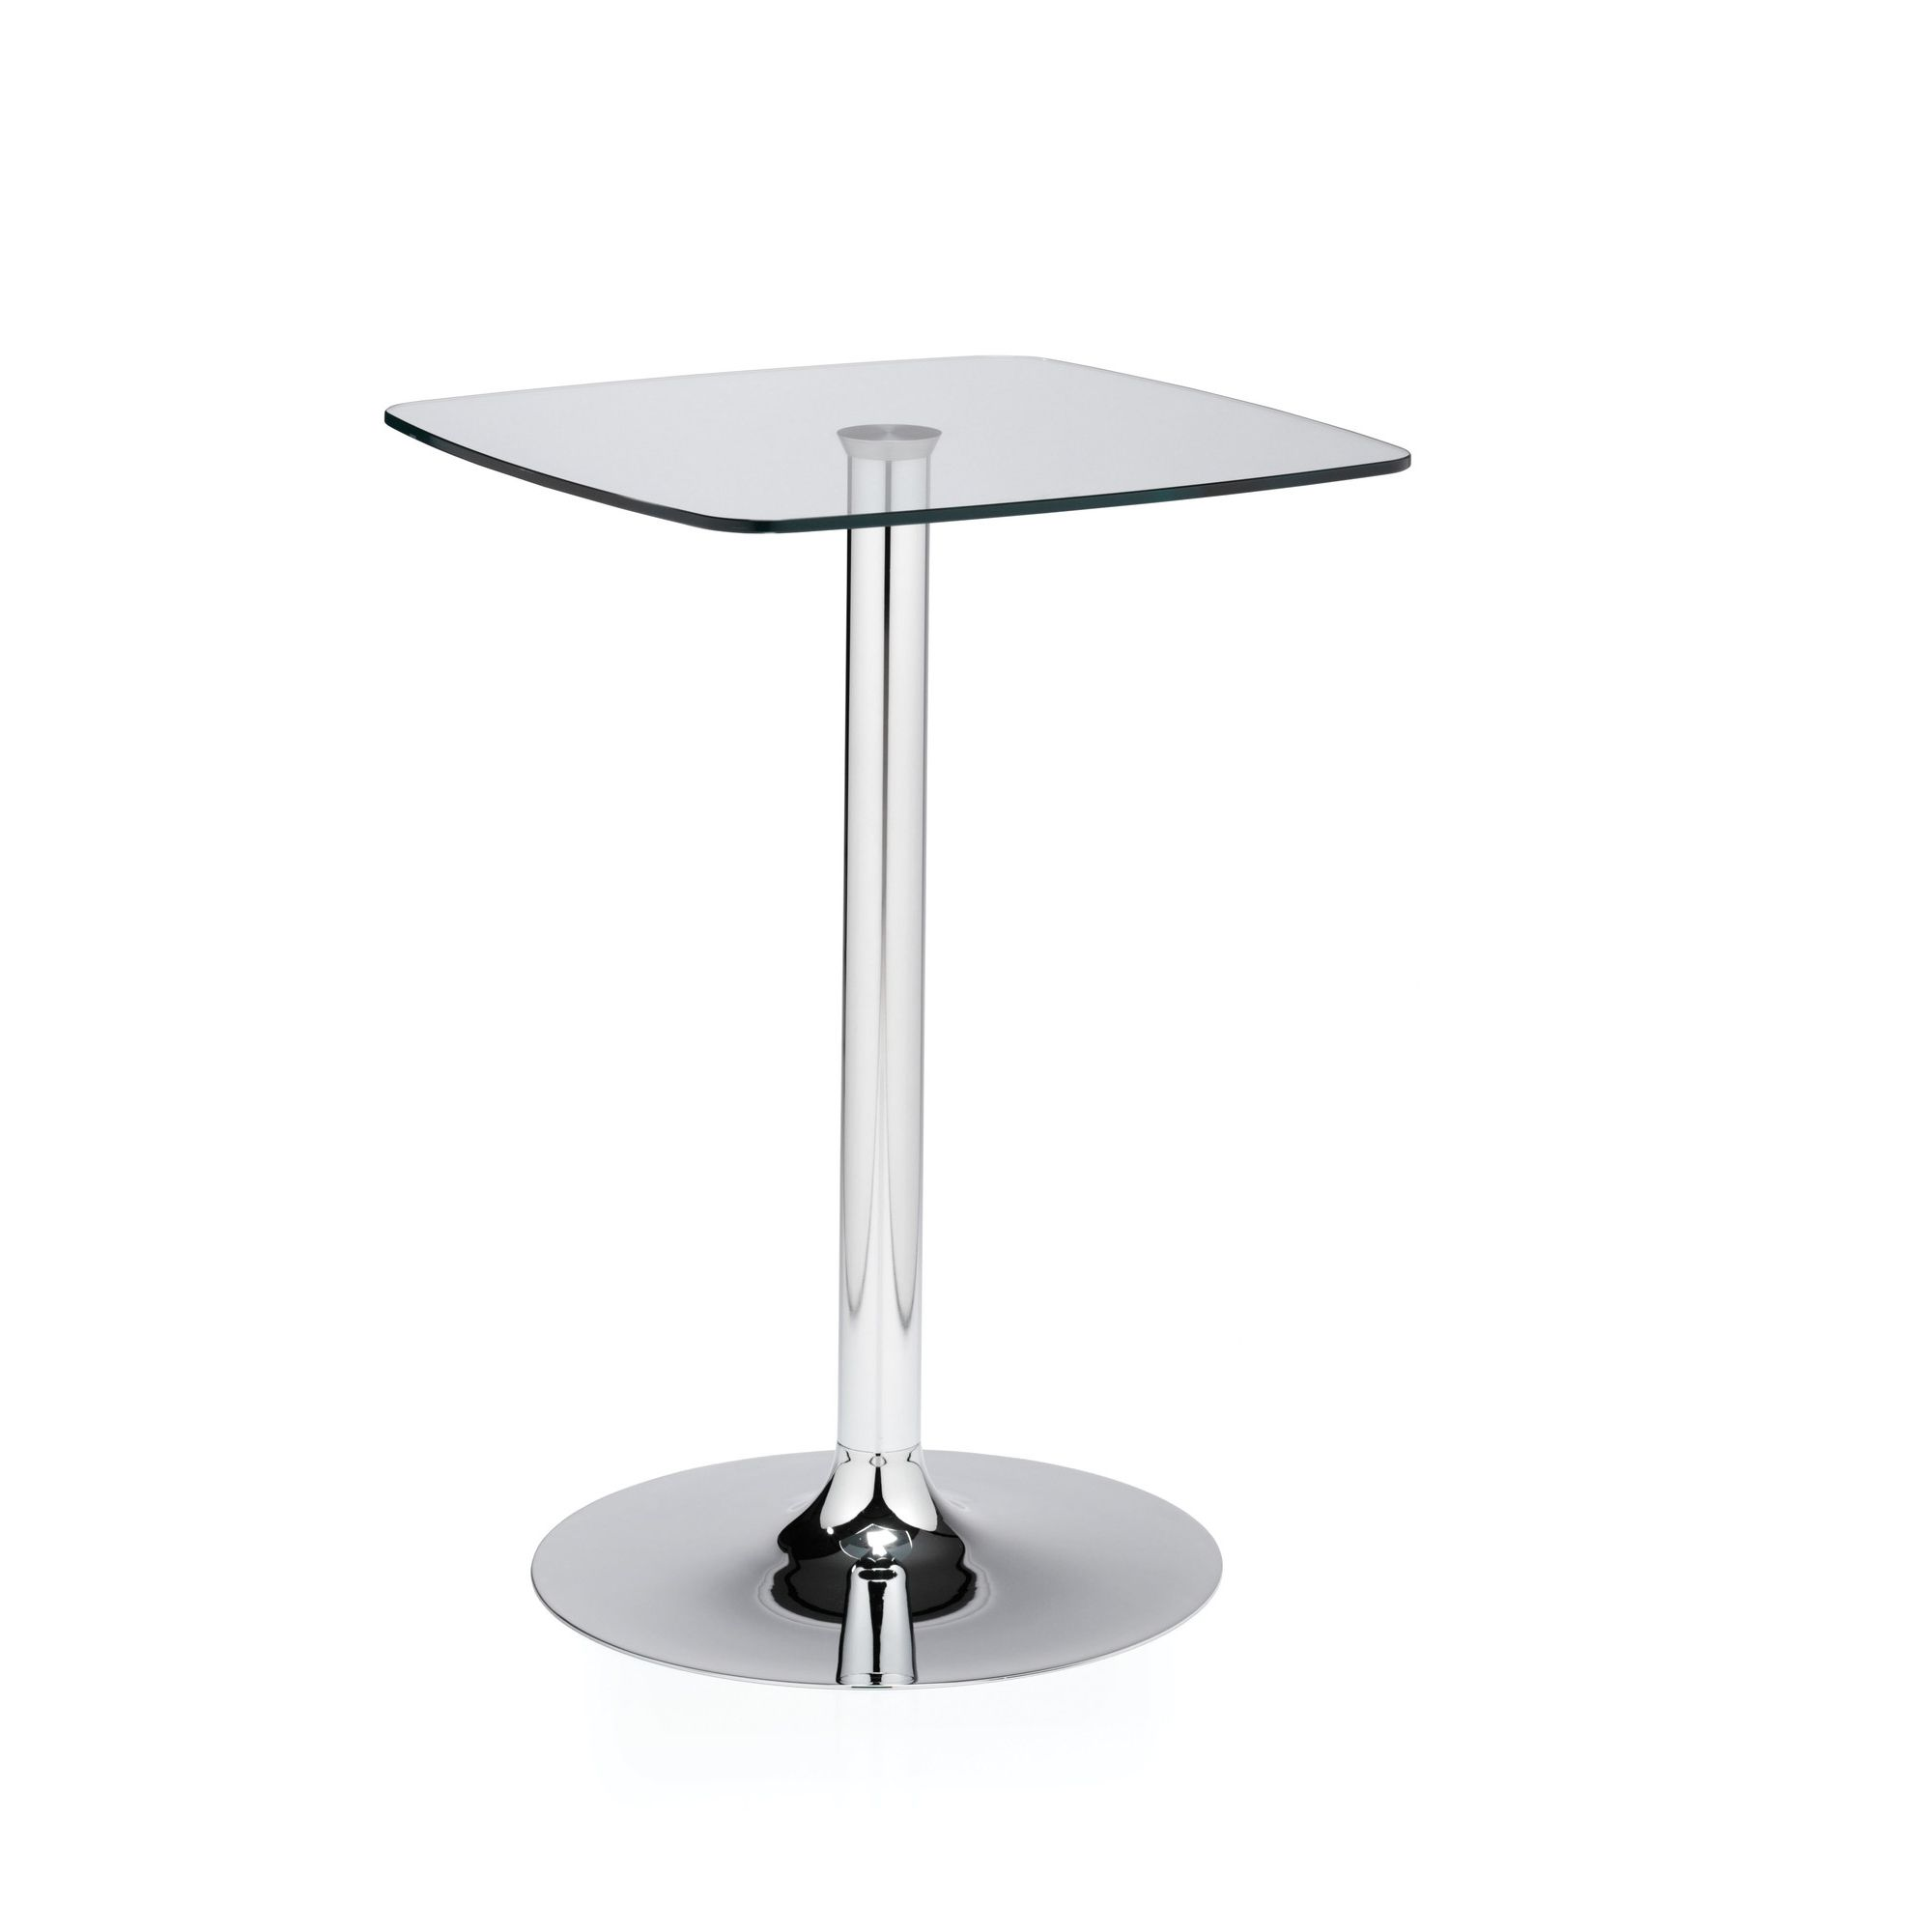 Ocee Design Venalo Trumpet Base Meeting Table at Tesco Direct